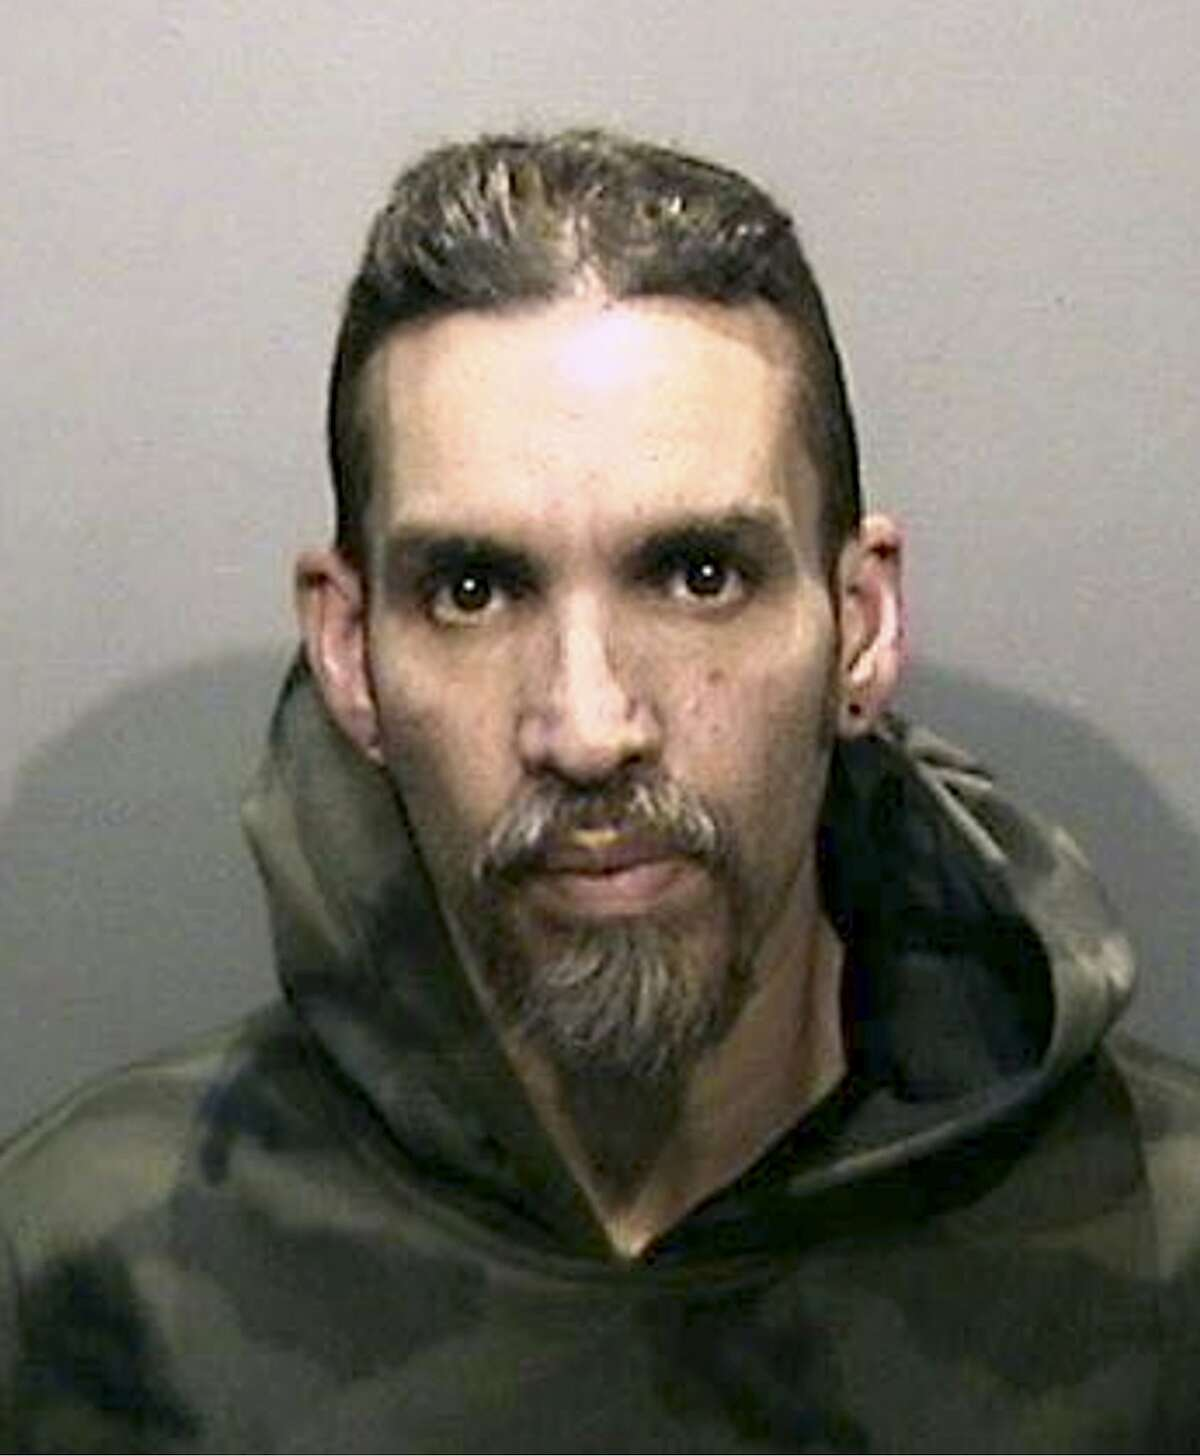 FILE - This Monday, June 5, 2017, file photo released by the Alameda County Sheriff's Office shows Derick Almena at Santa Rita Jail in Alameda County, Calif. Two men who pleaded no contest to 36 charges of involuntary manslaughter will face the family members of those who died in a fire at an illegally converted Northern California warehouse. A two-day sentencing hearing for Almena and Max Harris is scheduled to begin Thursday, Aug. 9, 2018 in Oakland, Calif. (Alameda County Sheriff's Office via AP, File)